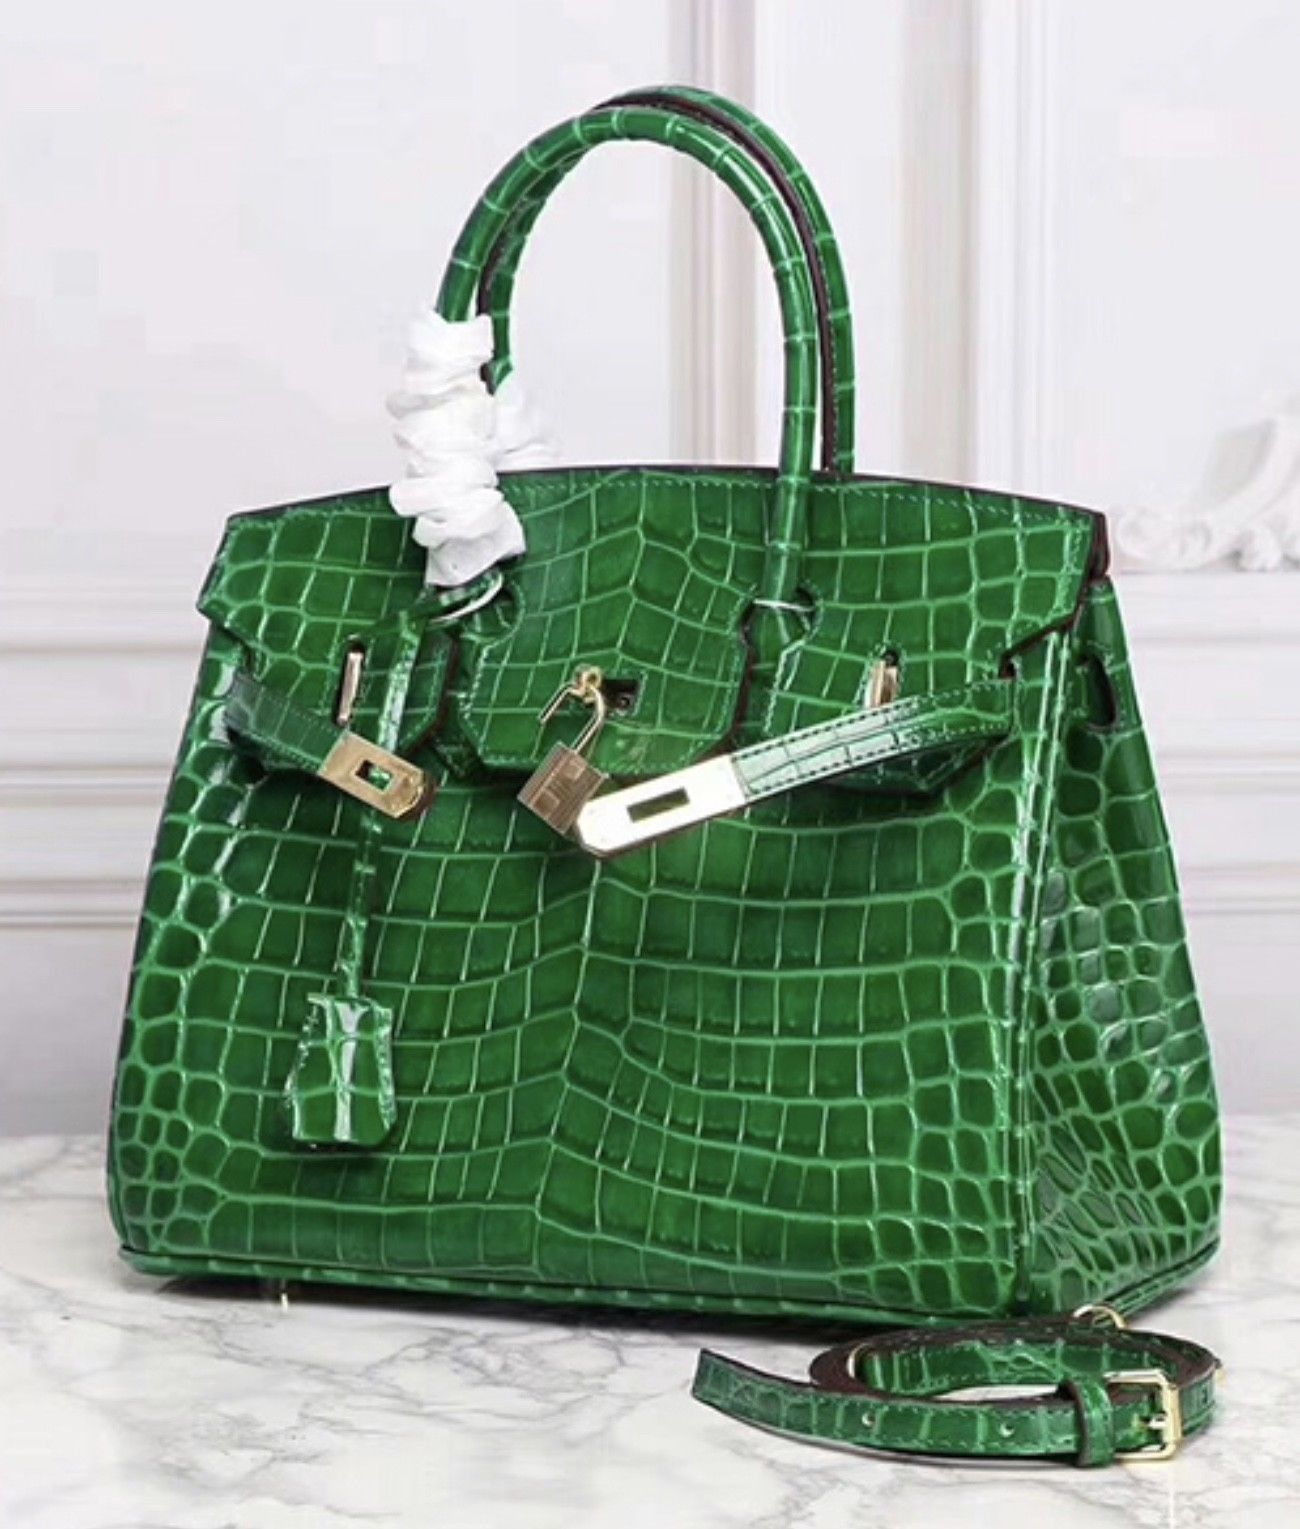 30 cm Crocodile Embossed Italian Leather Lock and Key Satchel Celebrity Handbag